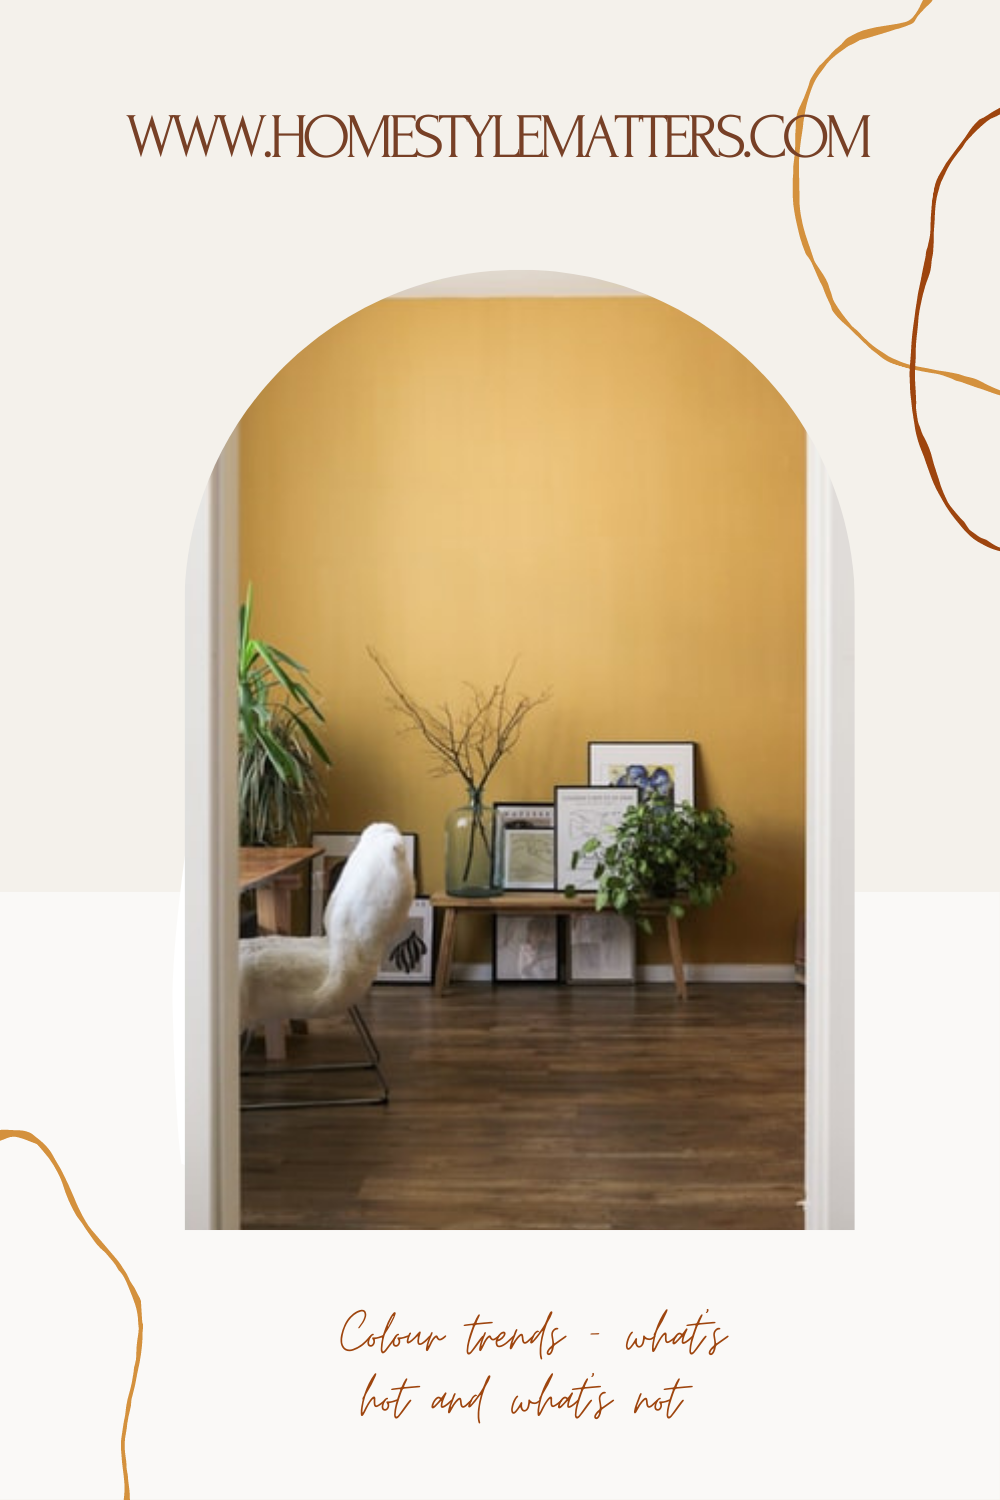 Colour trends - What's hot and what's not 2